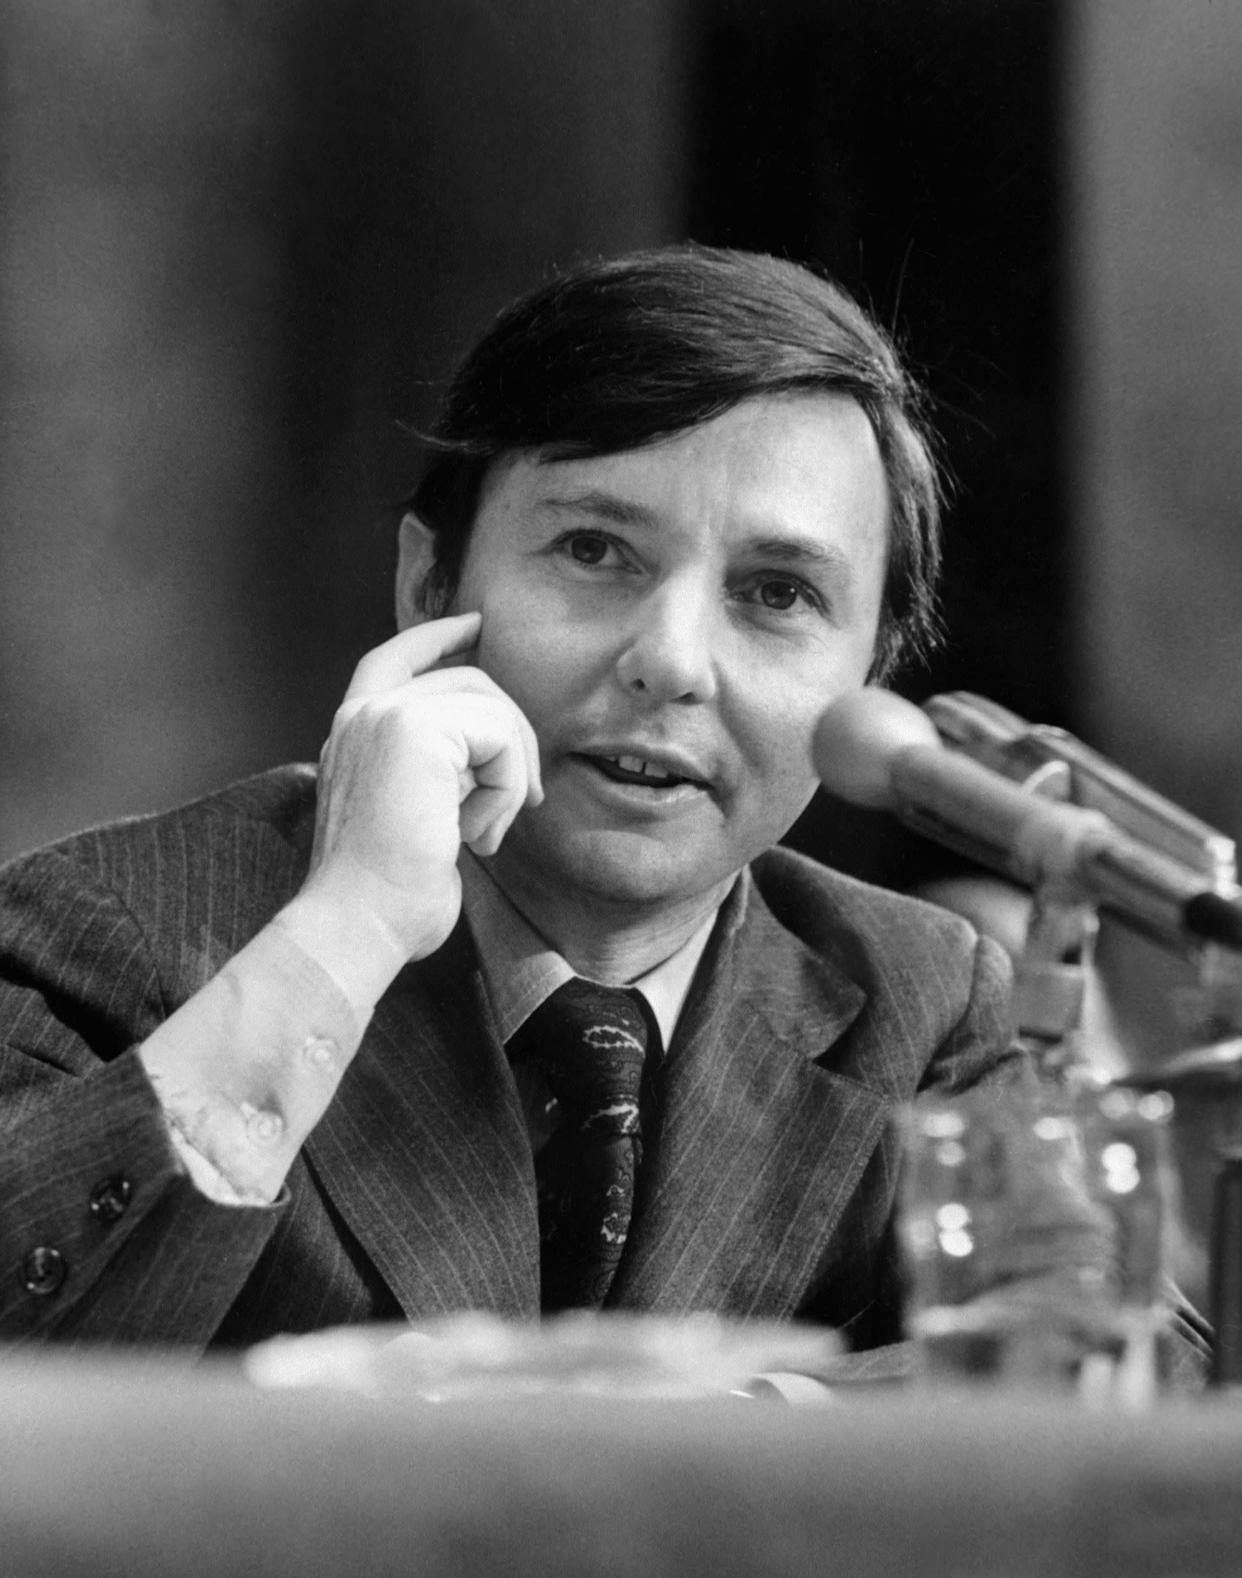 WASHINGTON, : Photo taken in the 1970's of Los Angeles attorney Donald H.Segretti, who played a role during the Watergate for former US President Richard Nixon. Segretti was paid to subvert and disrupt Democratic candidates' campaigns during the election year. AFP PHOTO (Photo credit should read AFP/AFP/Getty Images)